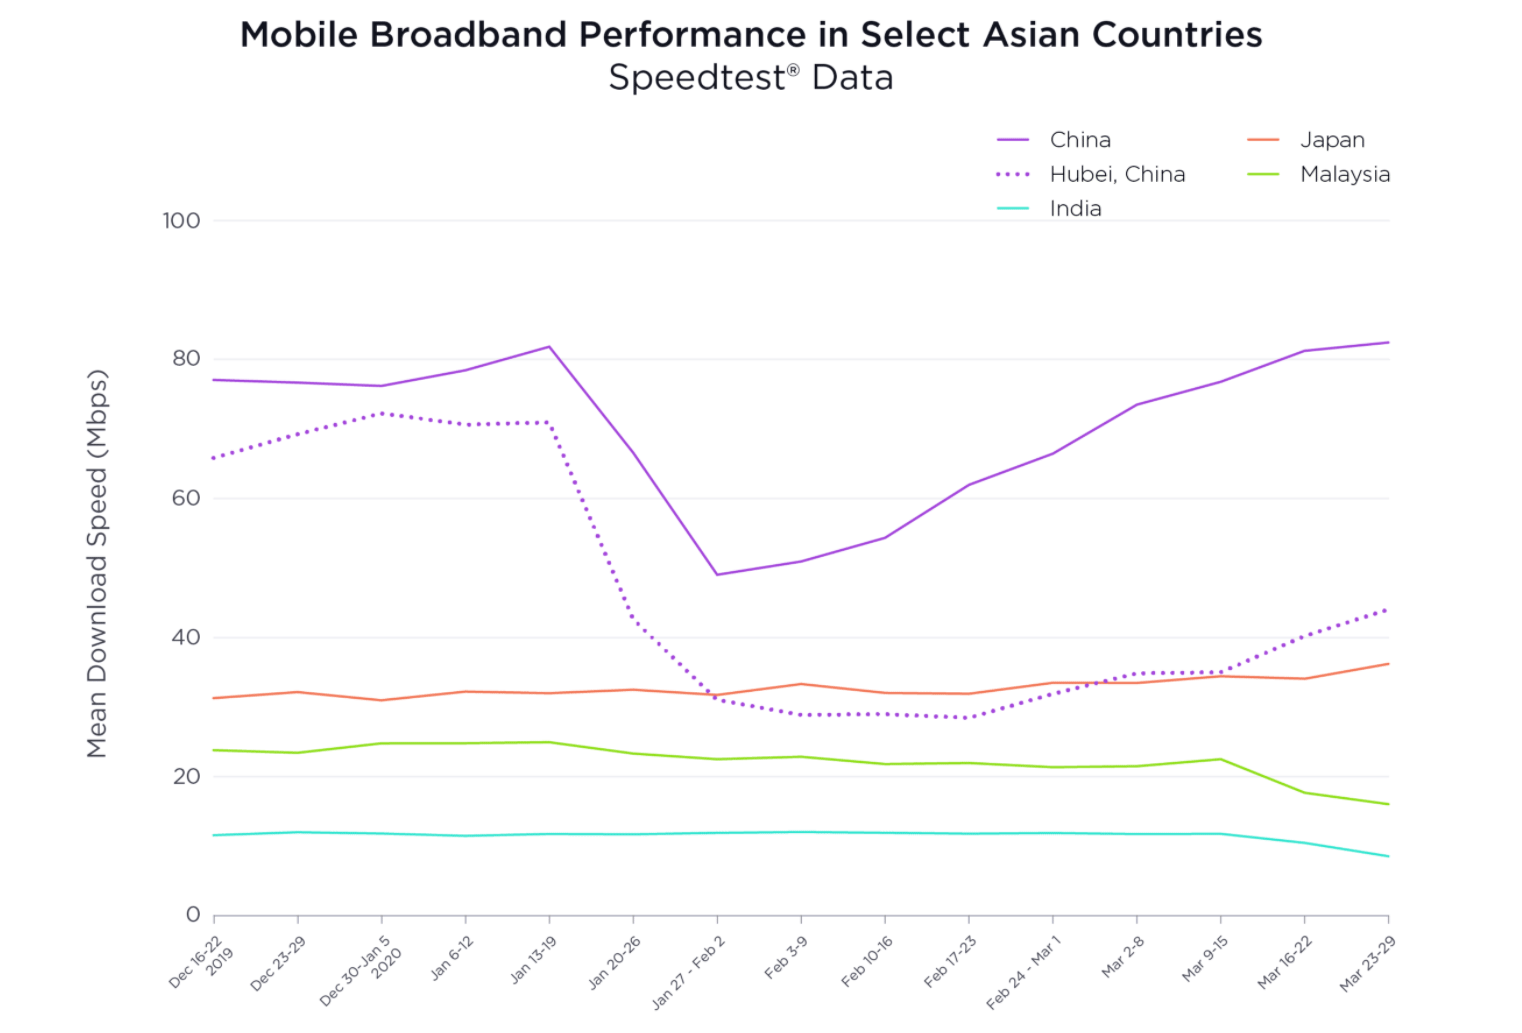 Drops in mobile performance in selected Asian countries based on data provided by Speedtest